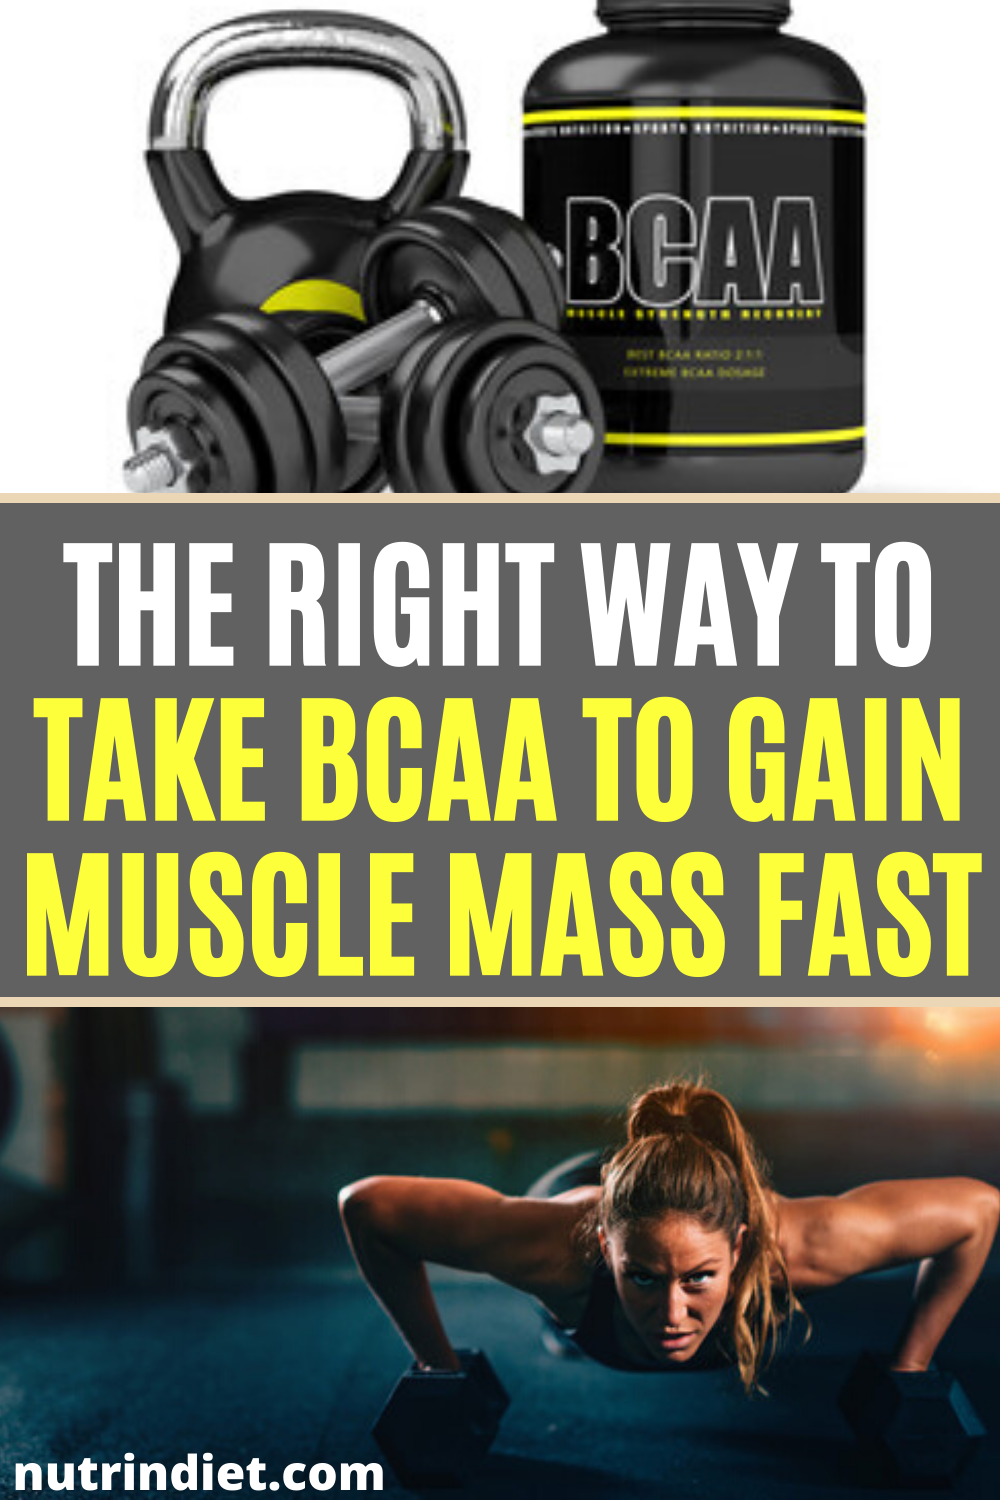 The Right Way To Take Bcaa Supplement To Gain Muscle Mass Fast In 2020 Bcaa Benefits Bcaa Gain Muscle Mass